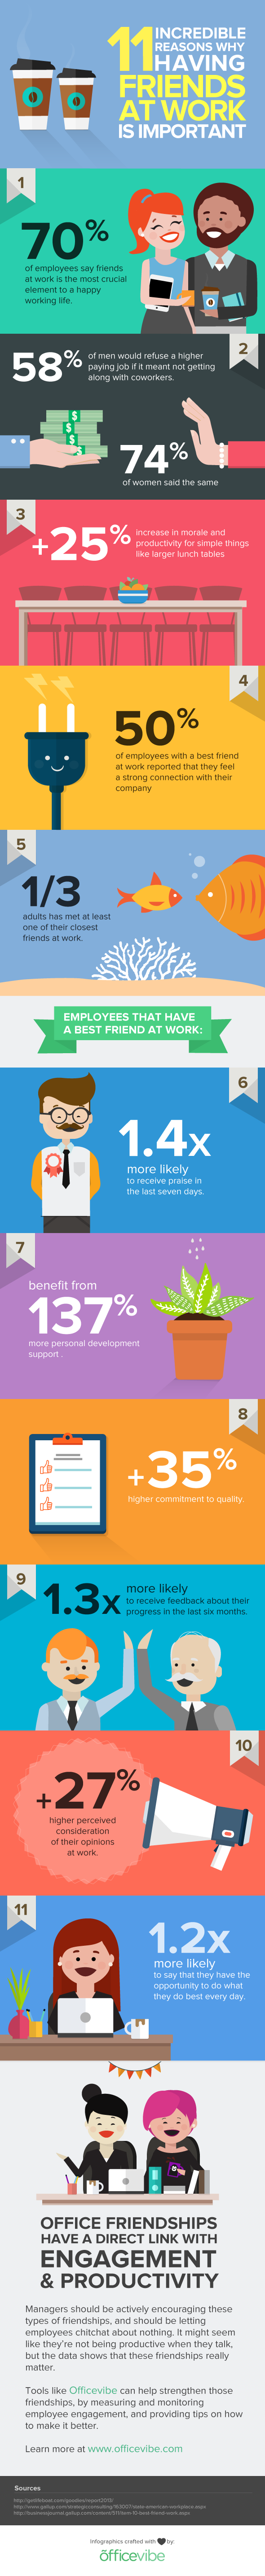 11 Incredible Reasons Why Having Friends At Work Is Important (INFOGRAPHIC)